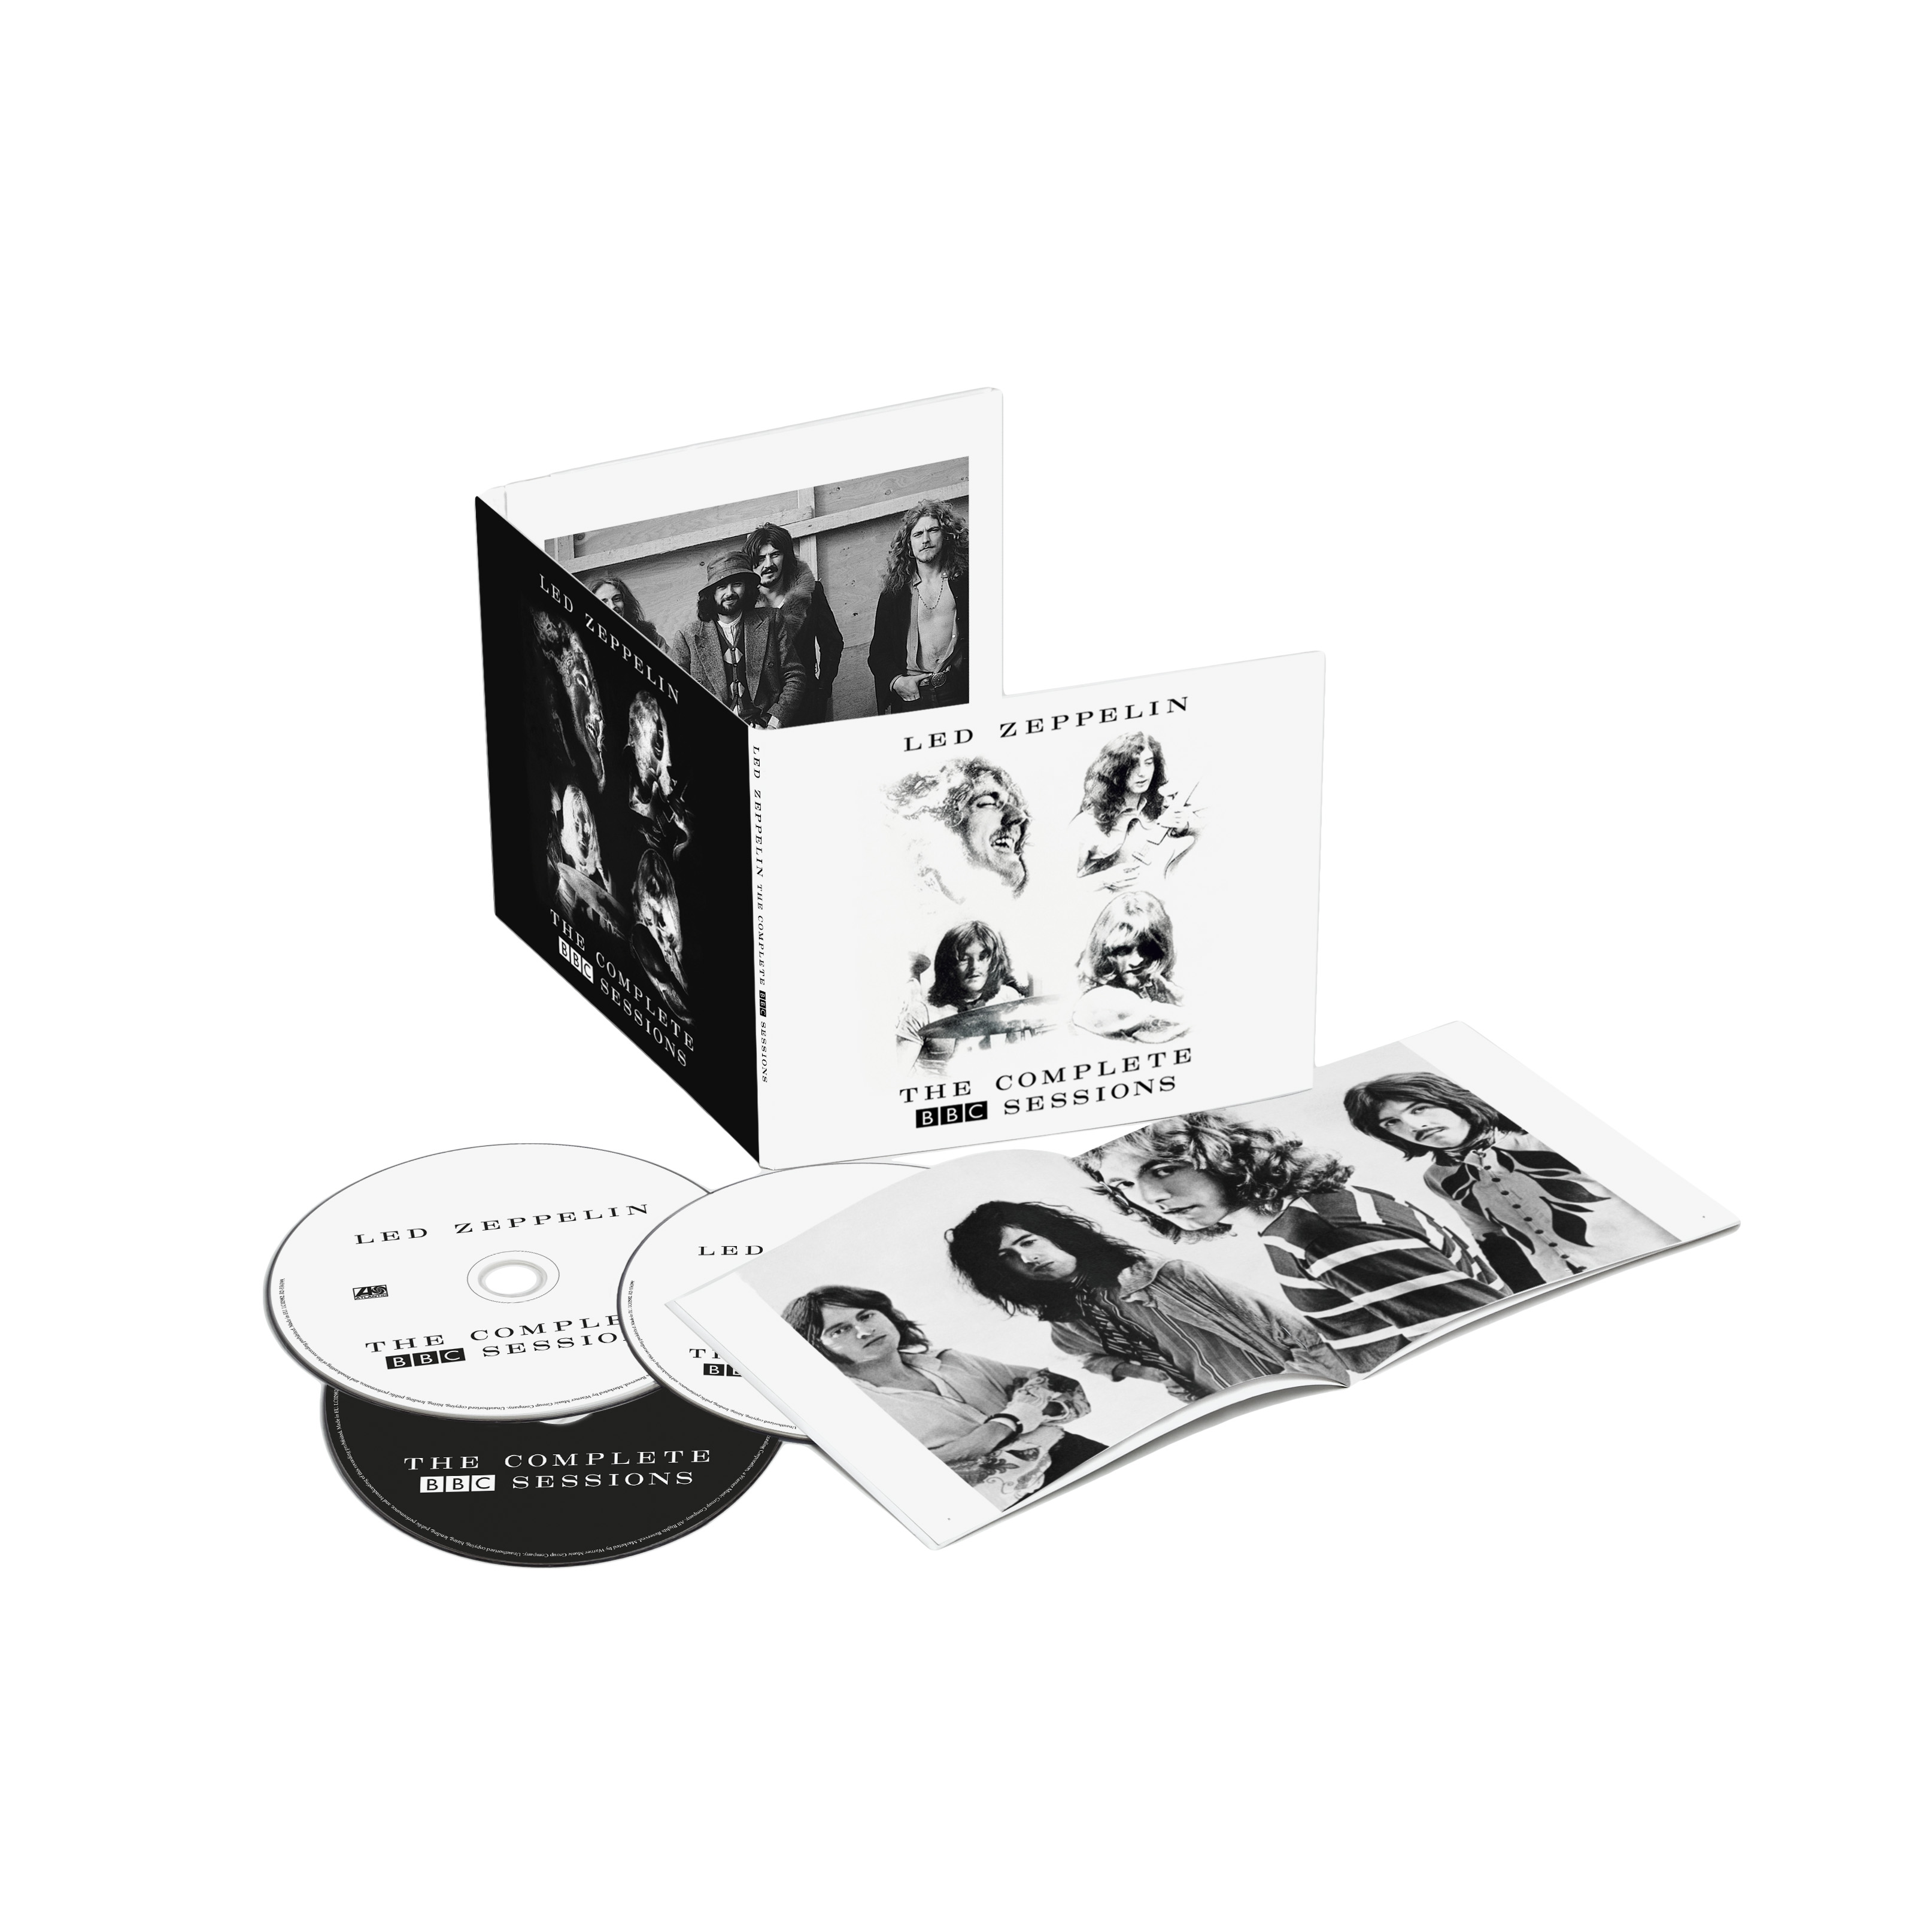 Led Zeppelin Set To Release Remastered Bbc Sessions With